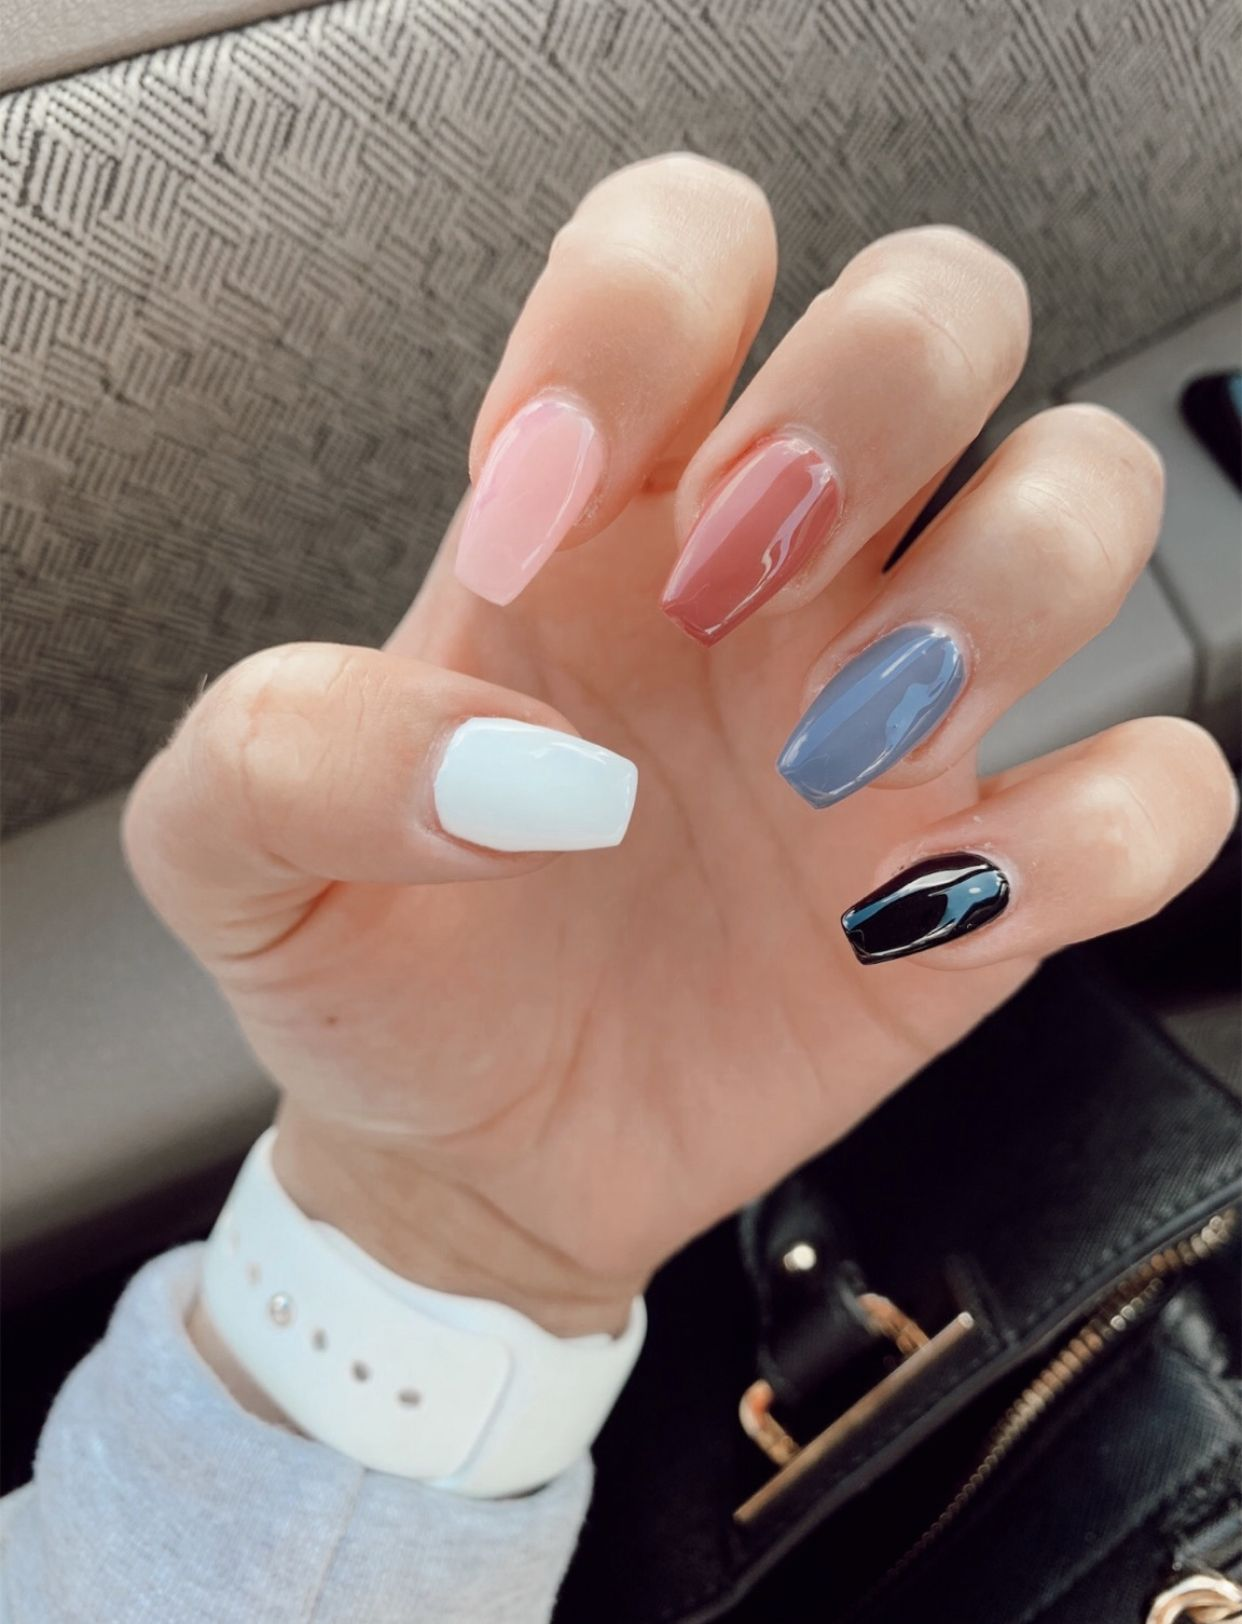 Pin By Kelli Hammonds On Aycrlic Nails In 2020 Dream Nails Cute